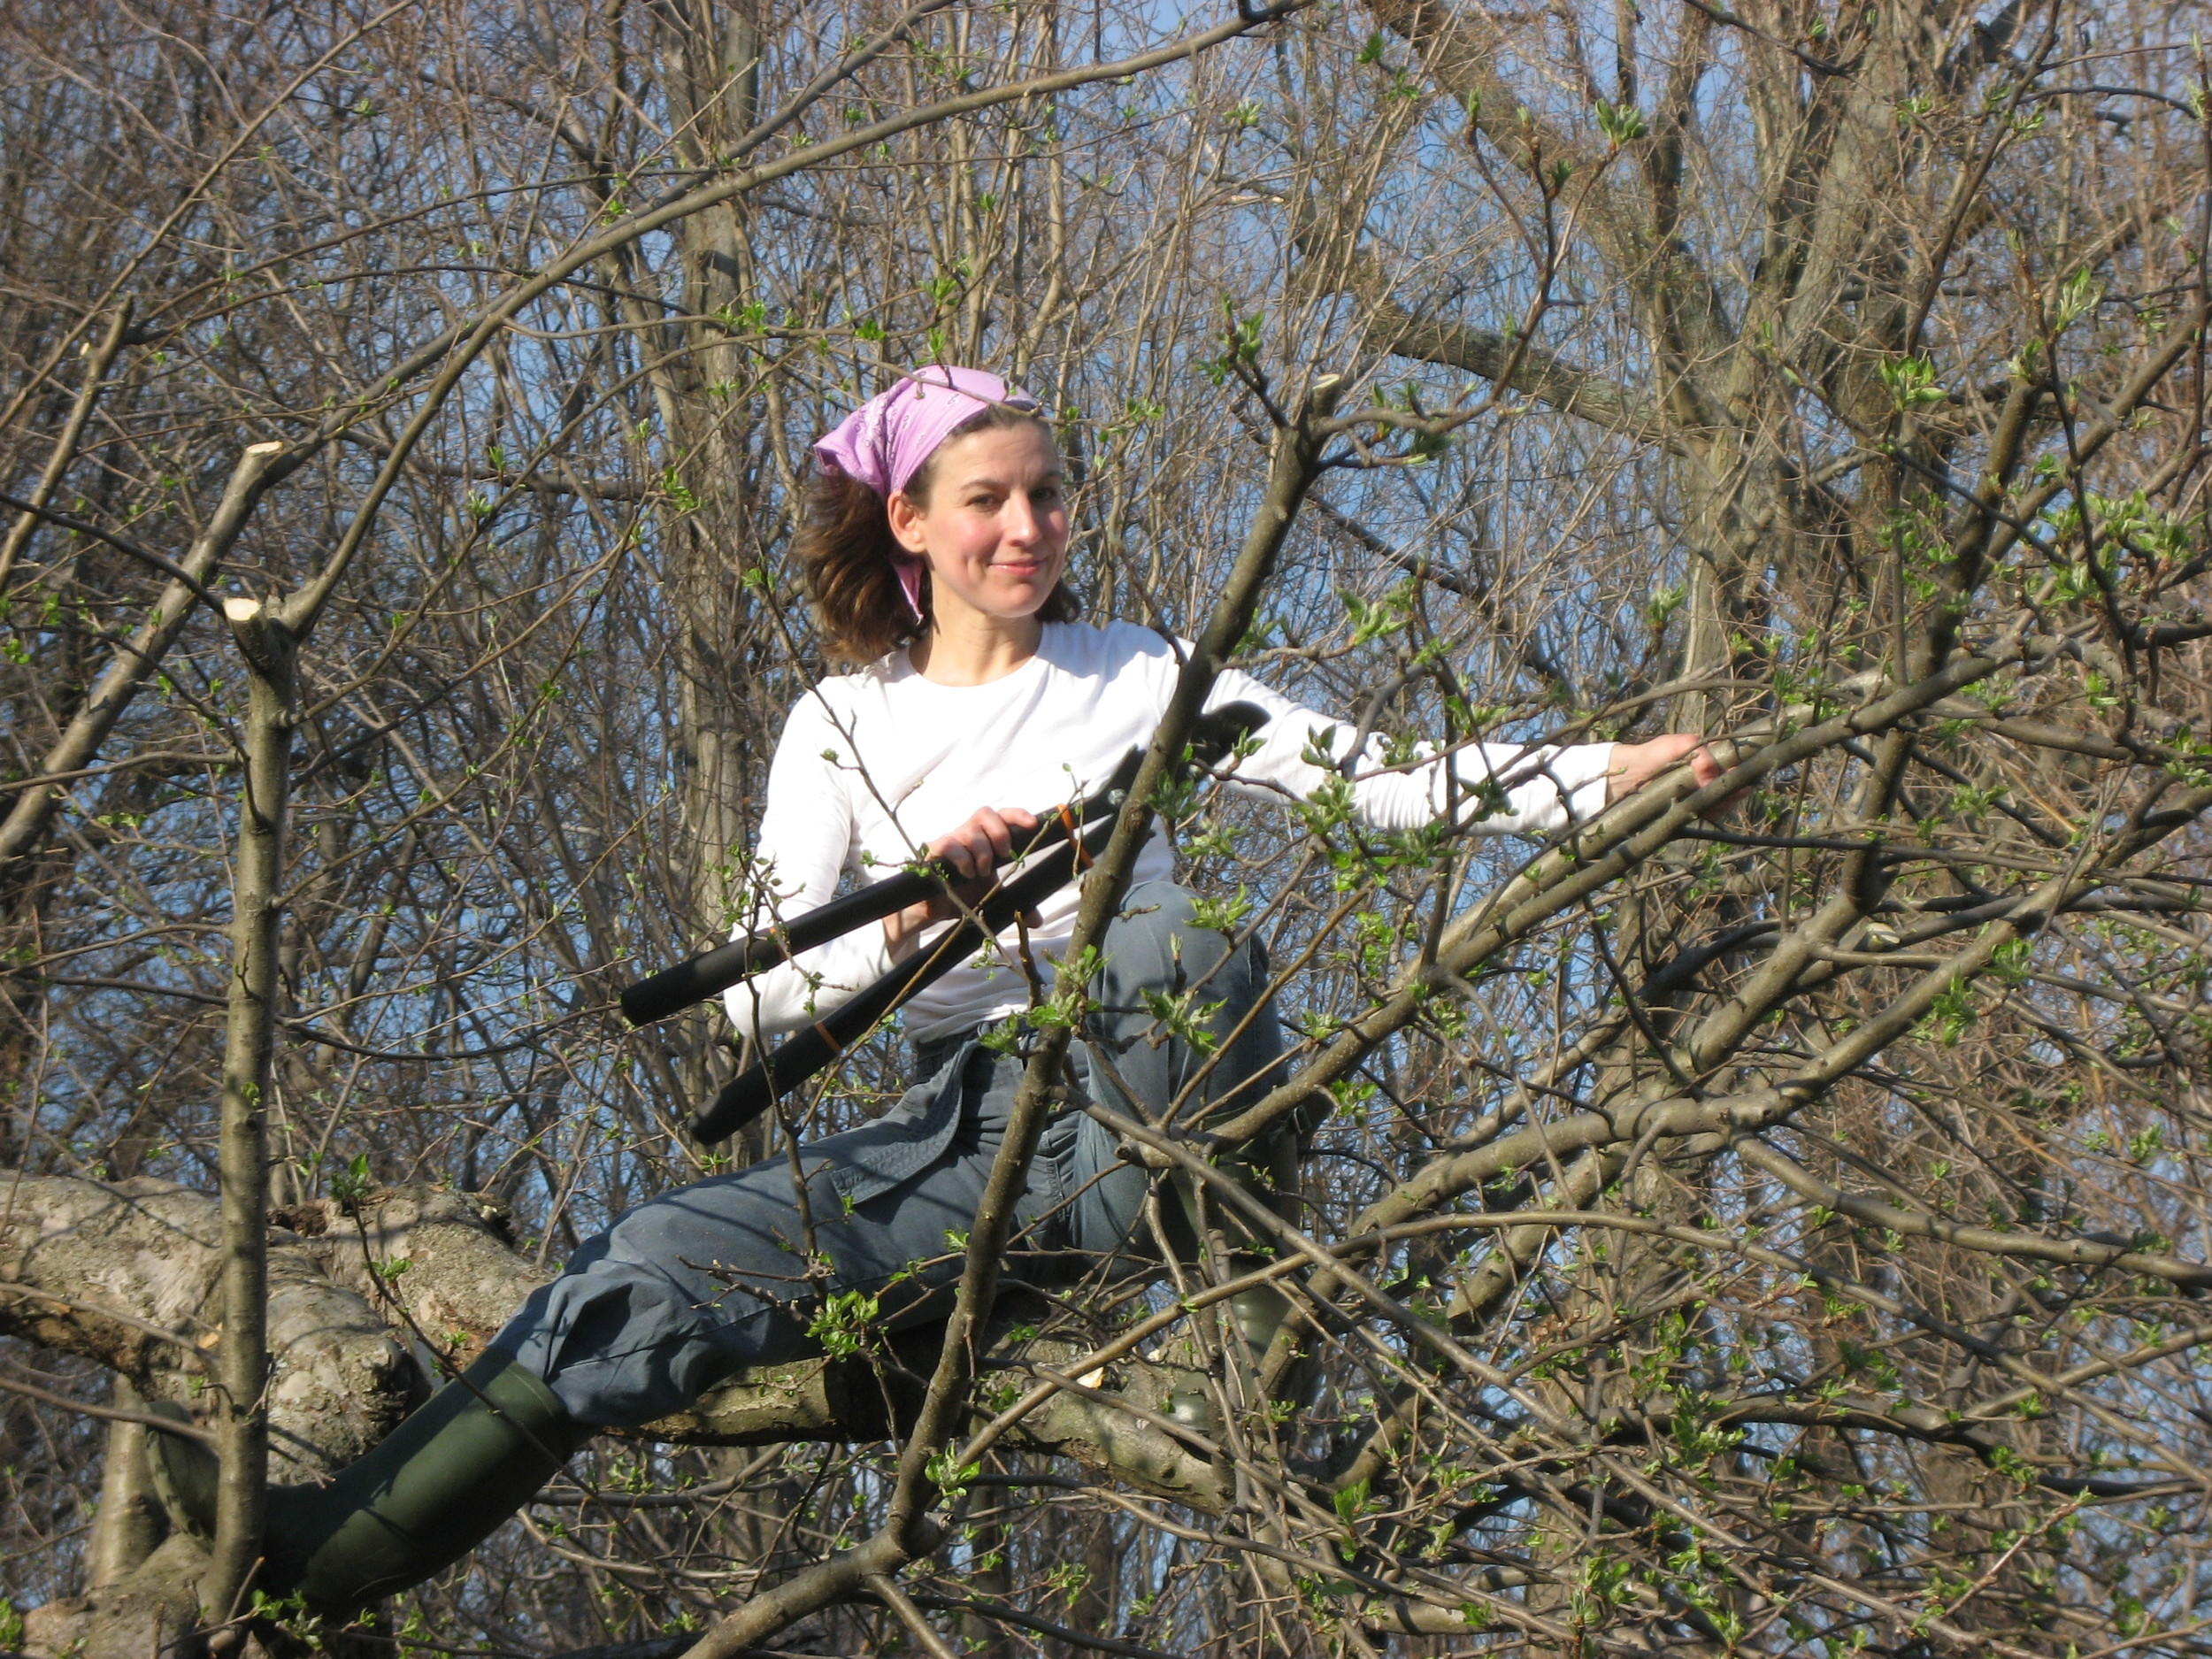 The Tipsy Tomato (obviously before she owned her Eiffel Tower orchard ladder),     restoring   neglected apple trees. Patience: prune no more than one-third of a tree annually.